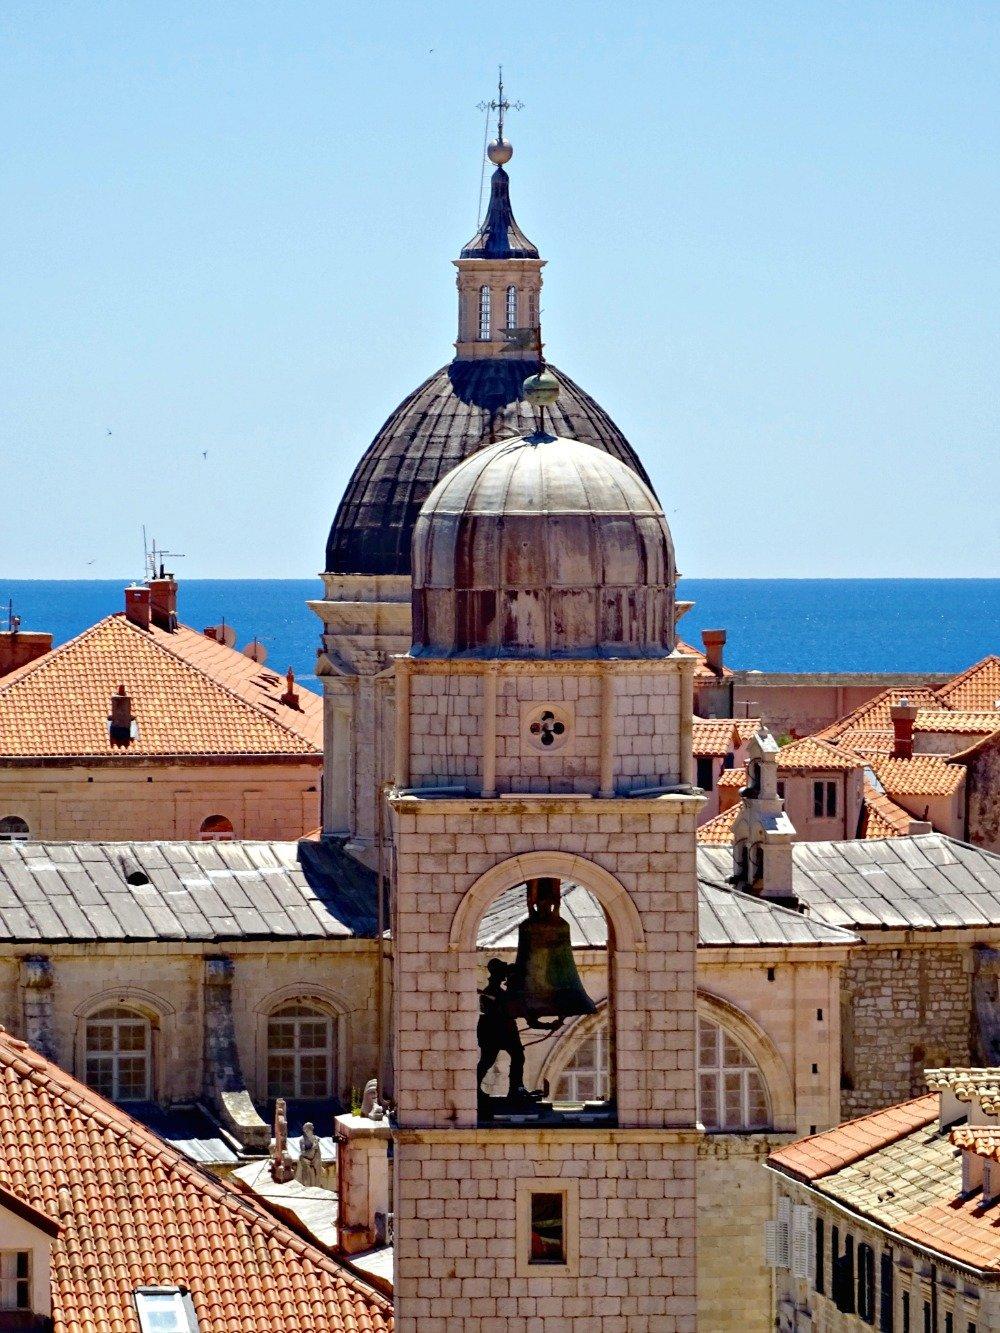 Dubrovnik clock tower from the walls